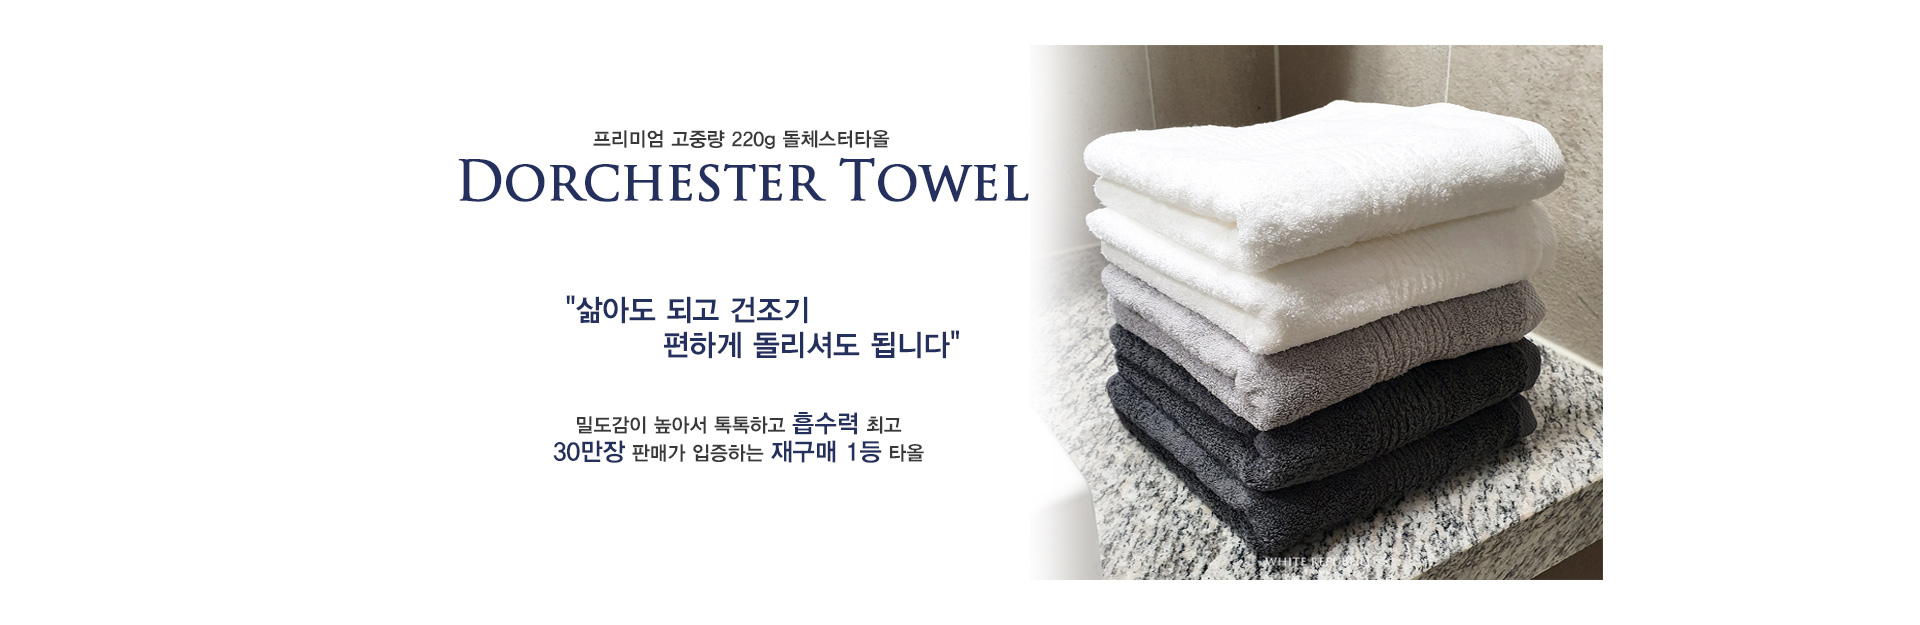 Dorchester Towel